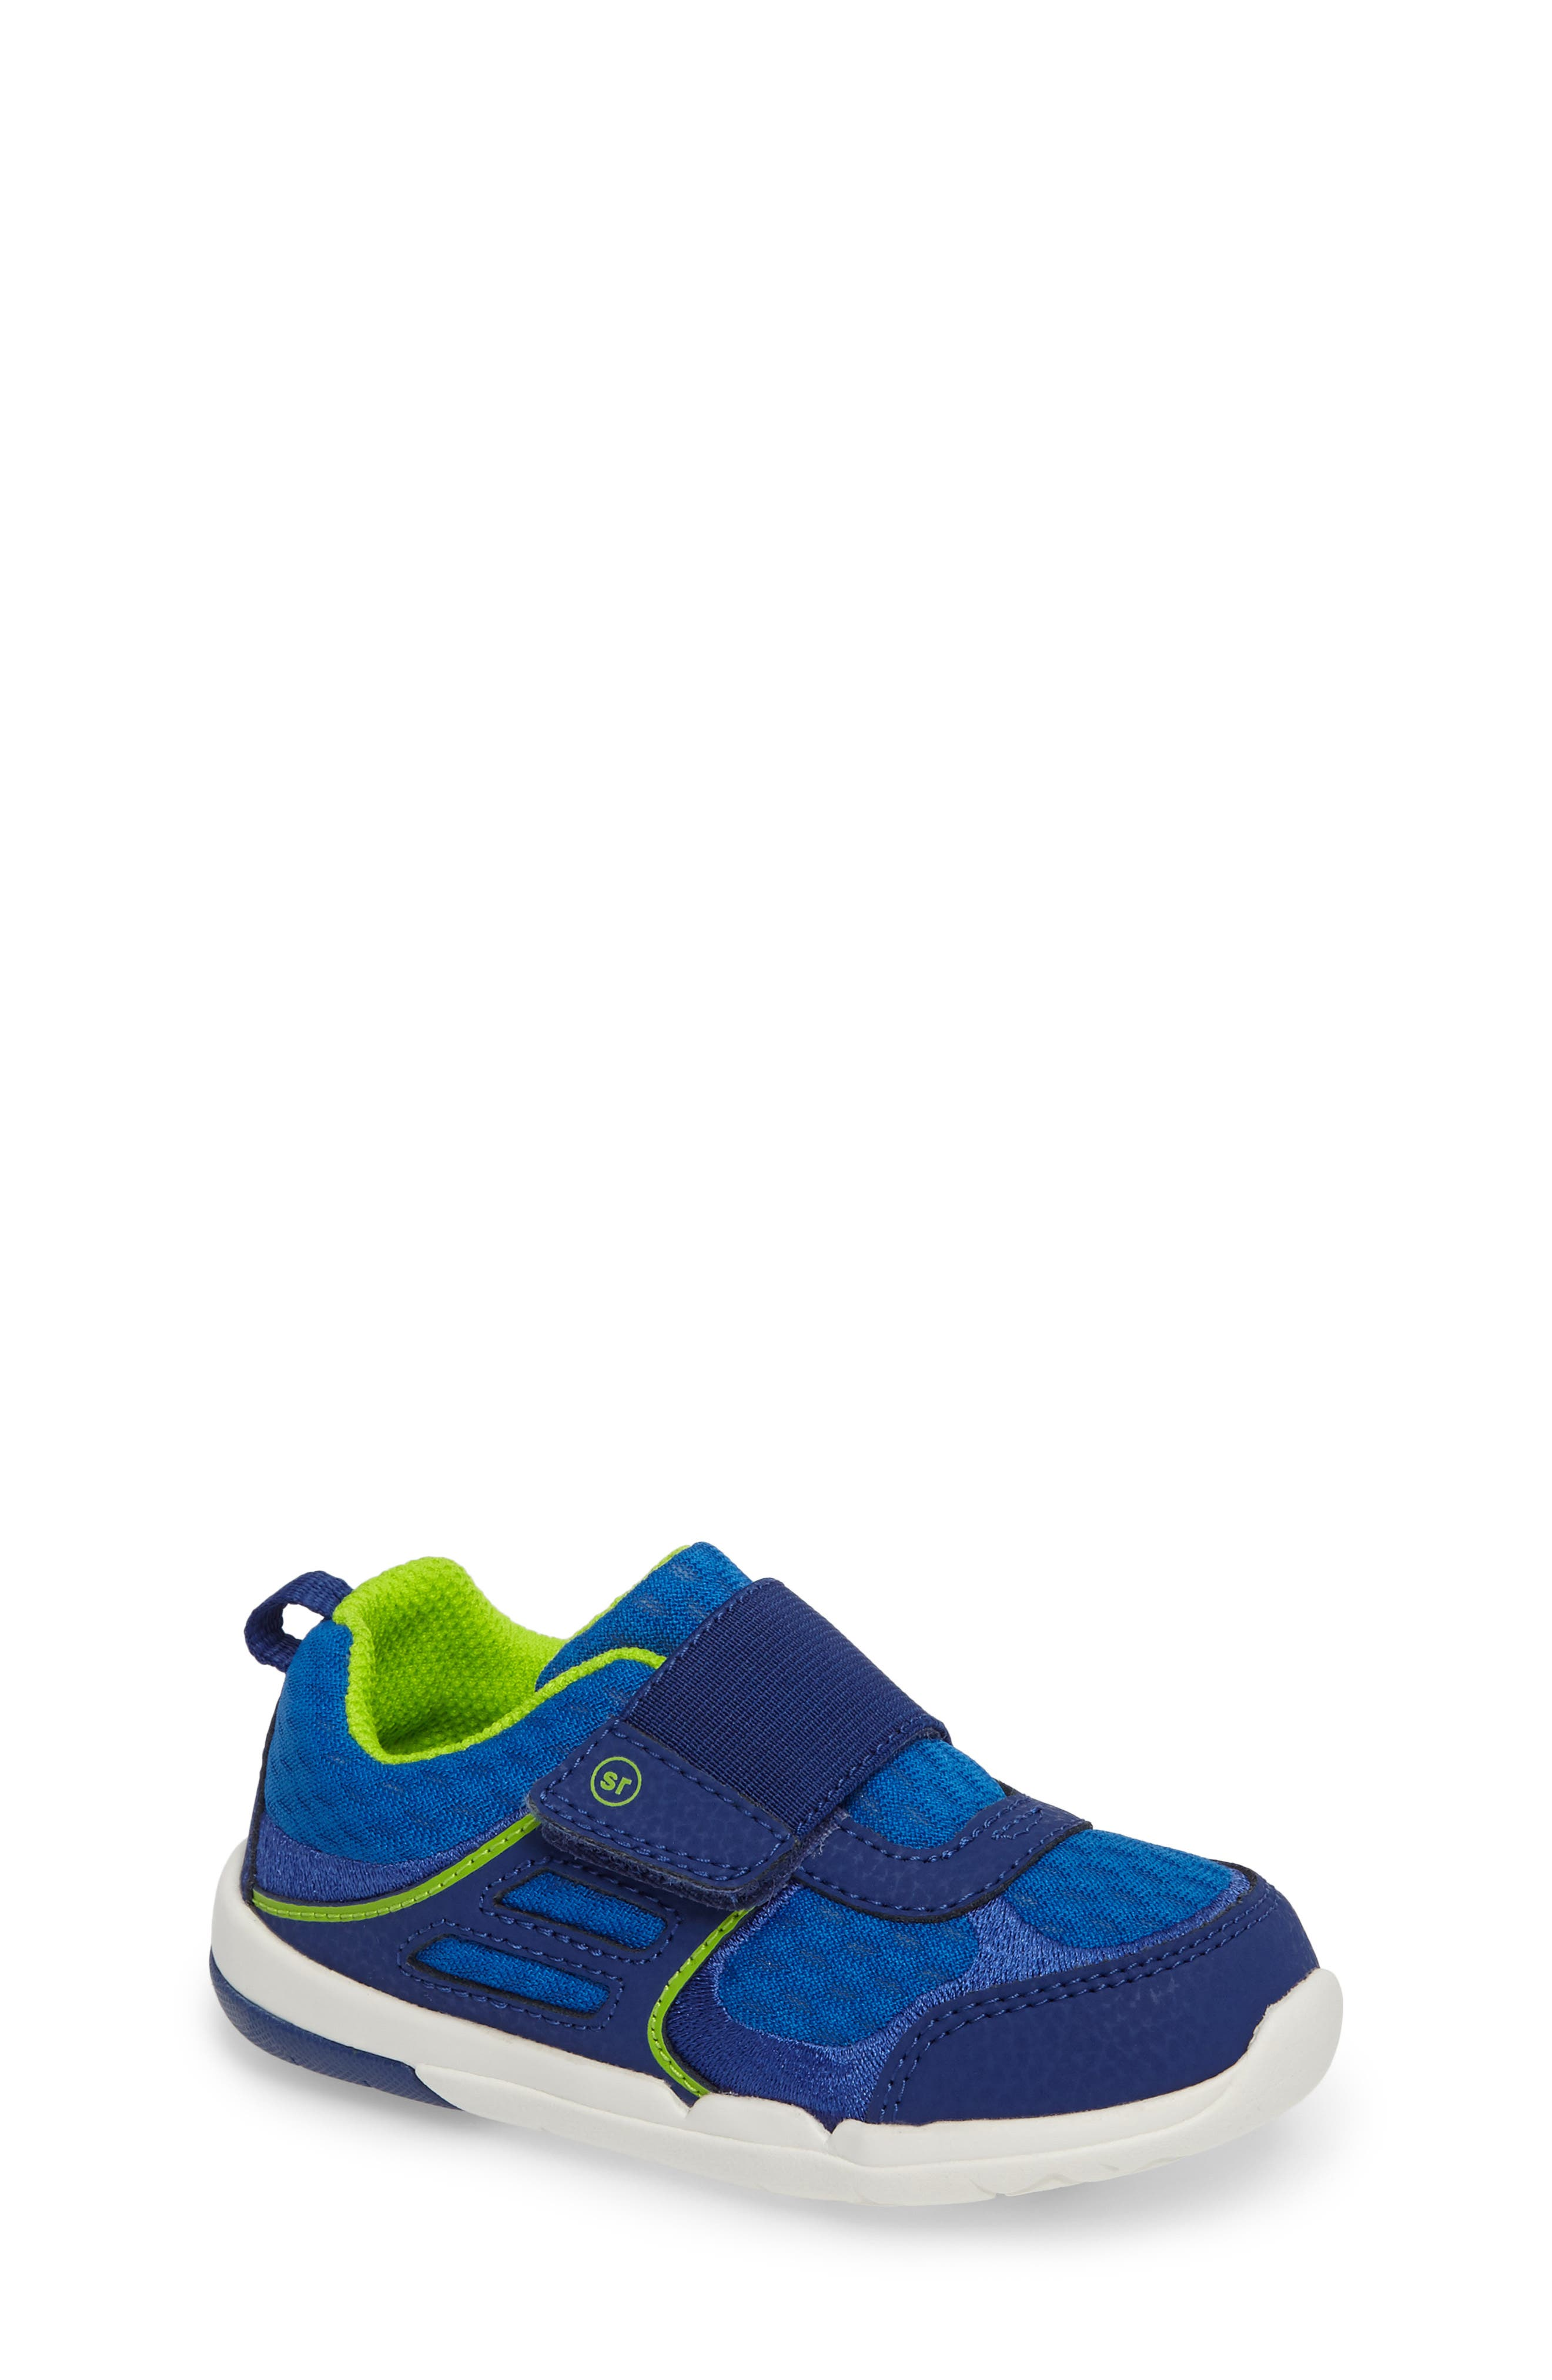 Casey Sneaker,                         Main,                         color,